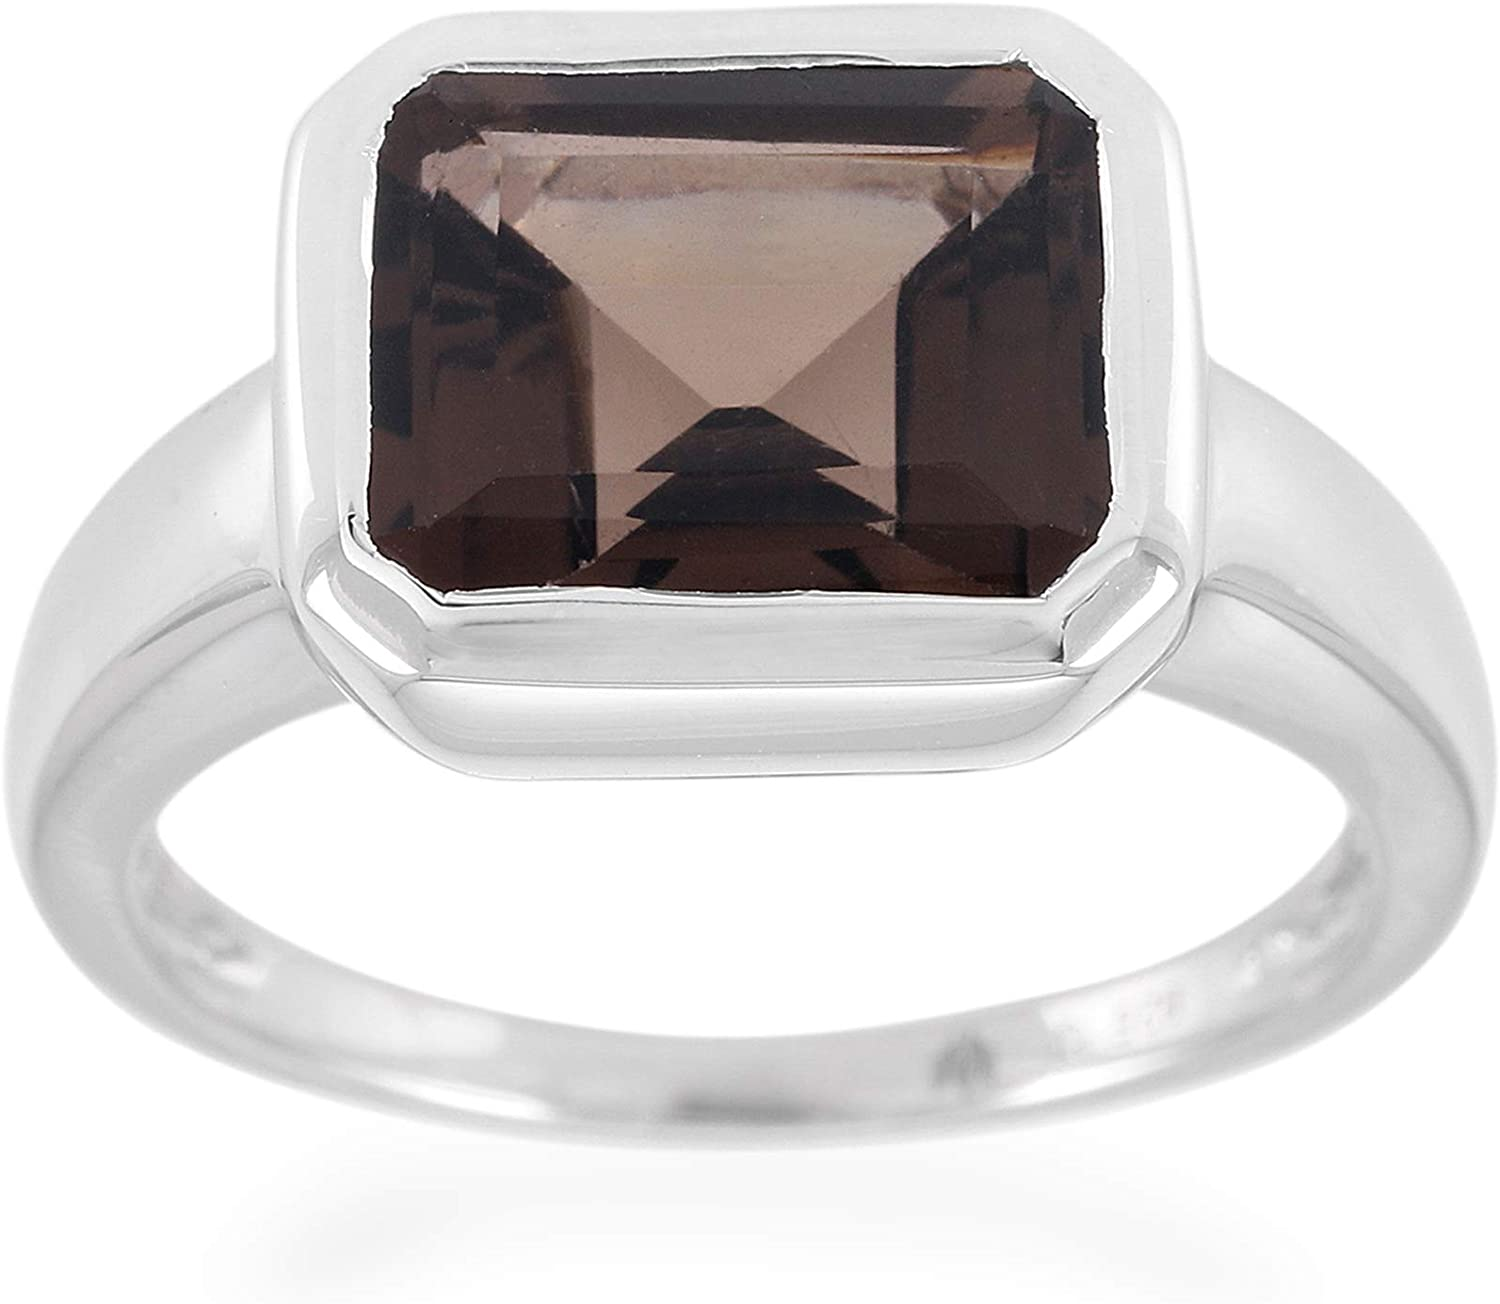 Traditional Brown SMOKY QUARTZ Big Ring Sz 7.25 925 Sterling Silver Exclusive Rare Jewelry AAA Quality Authentic Stone Girls/' Jewellery